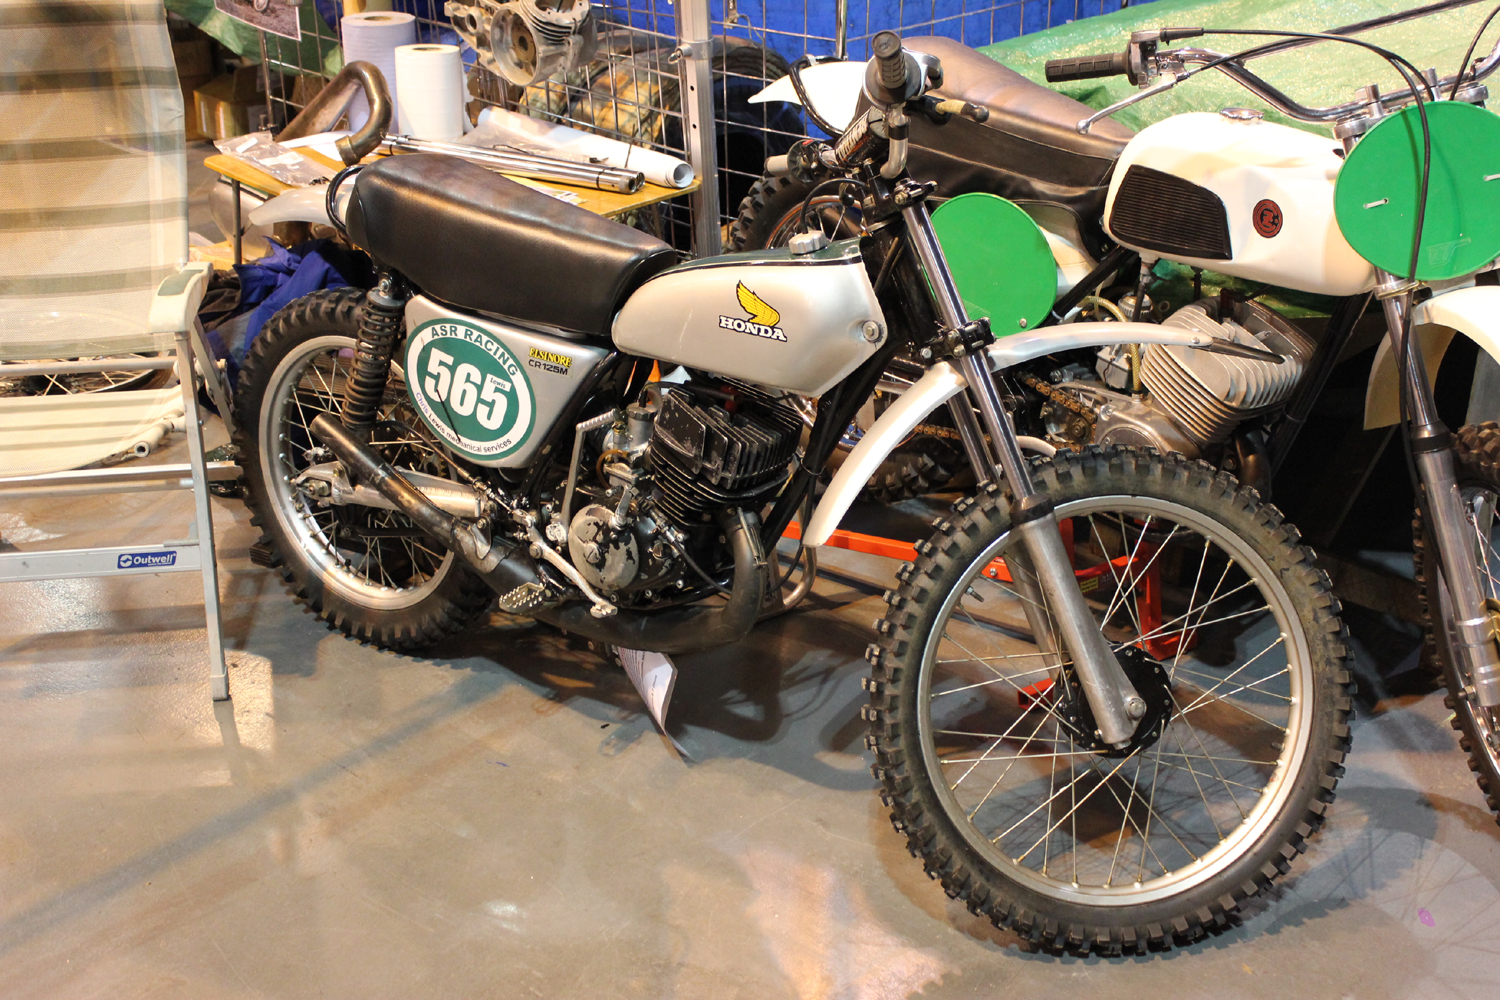 classicdirtbikerider.com-photo by Mr J-2015 Telford classic dirt bike show-HONDA CR125M ELSINORE TWINSHOCK BIKE